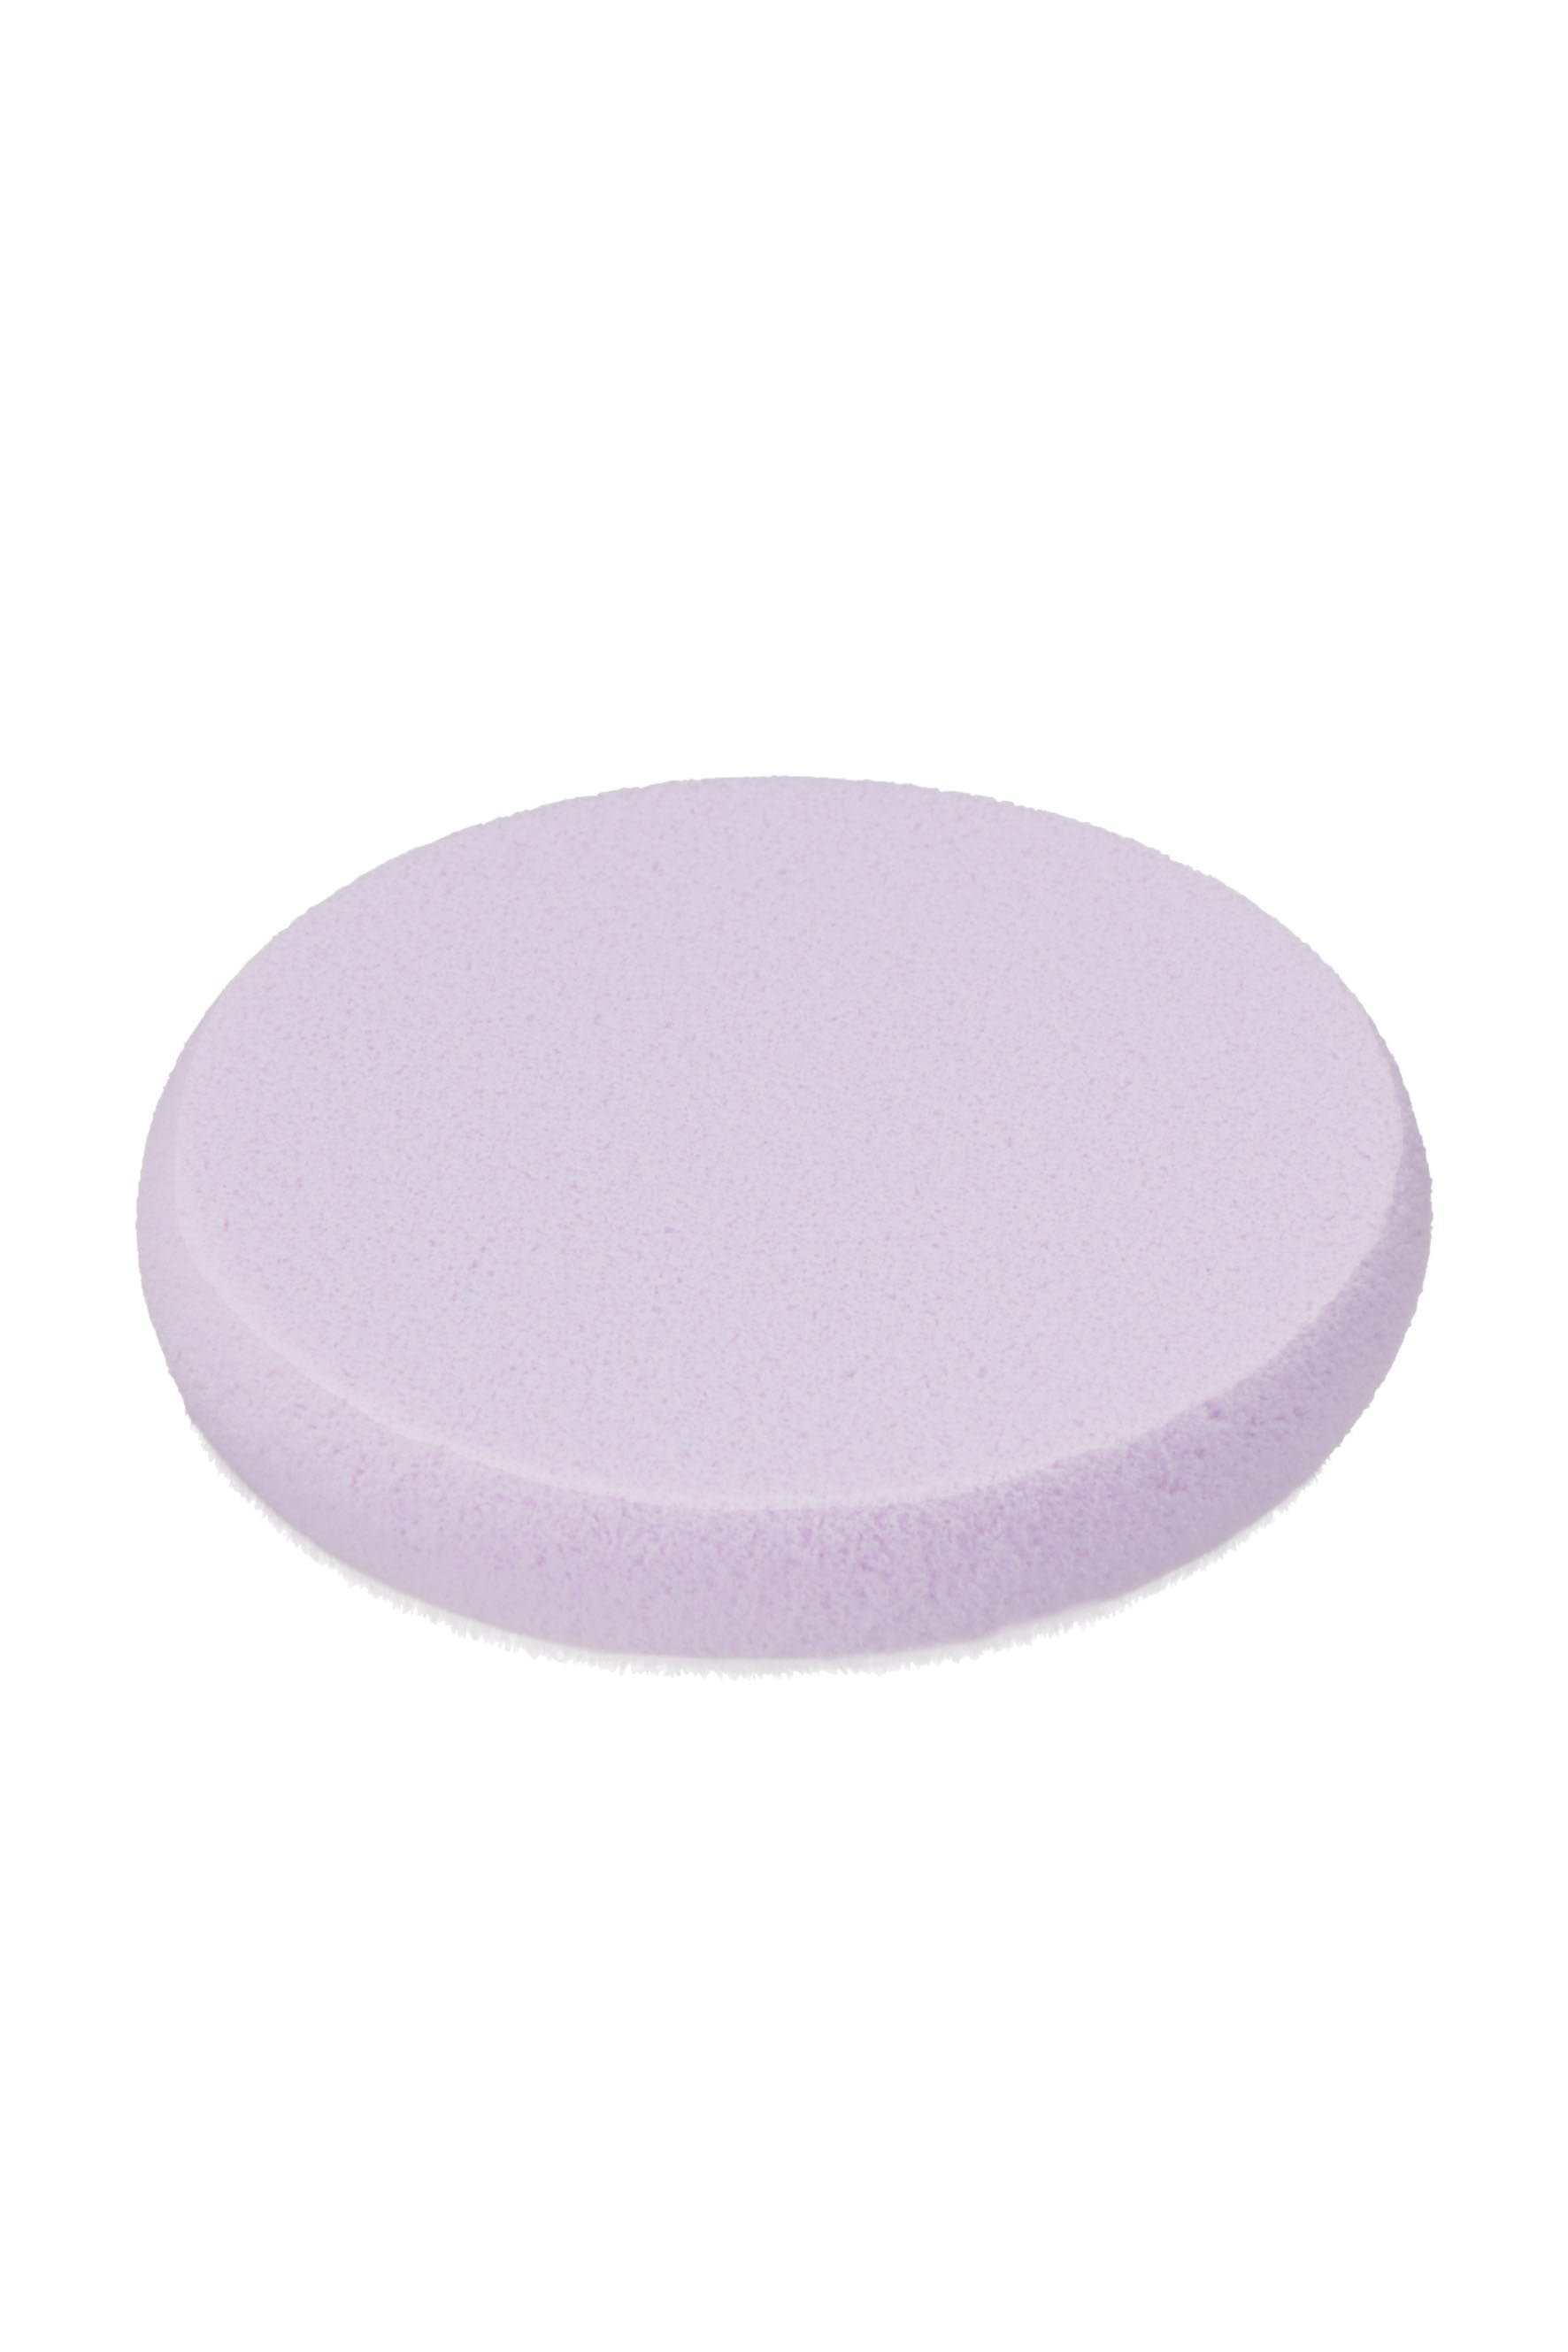 Make Up Sponge - Anna Sui